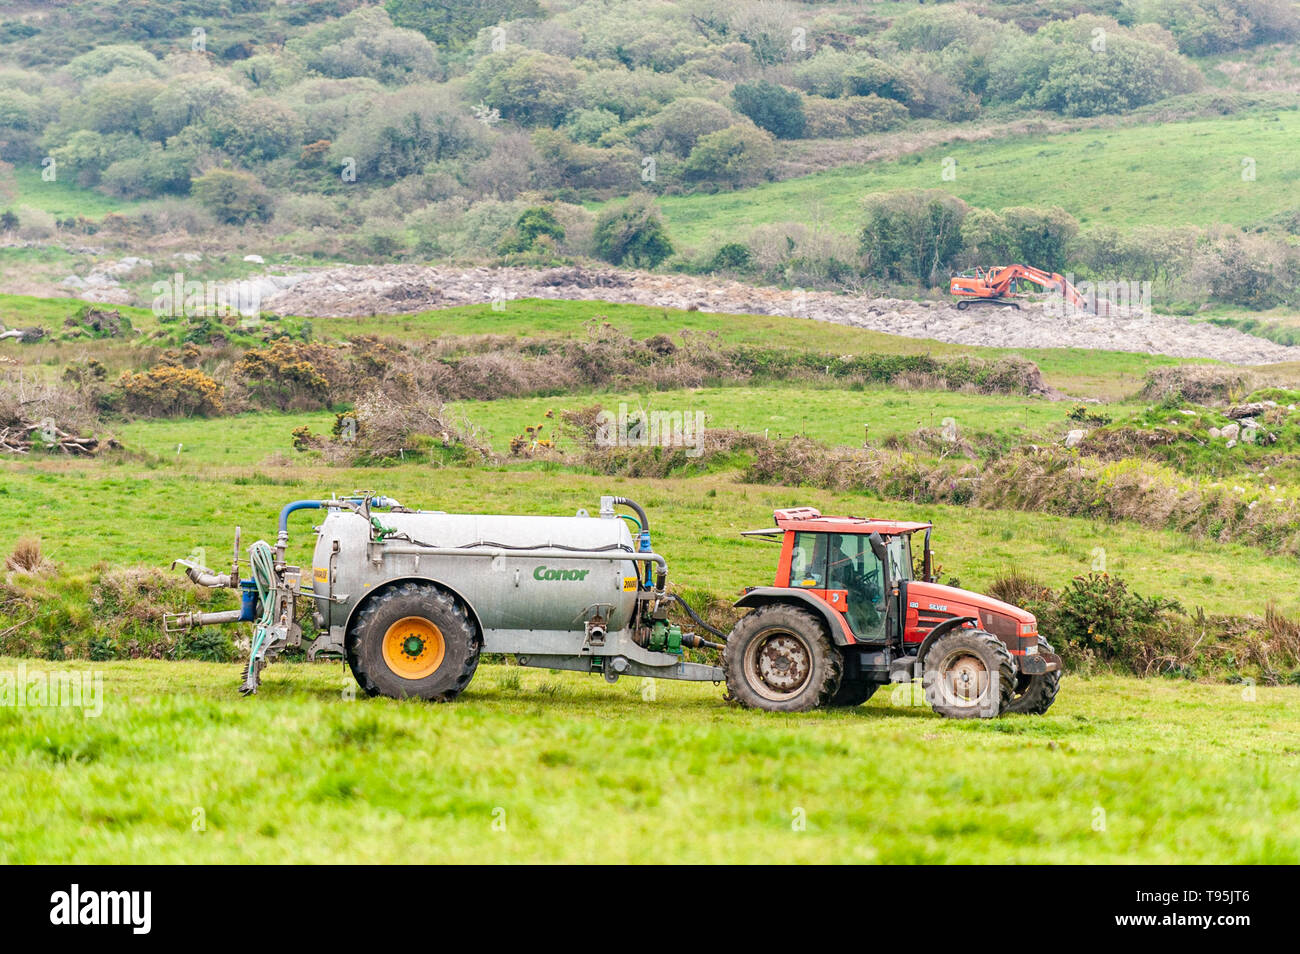 Ballydehob, West Cork, Ireland. 16th May, 2019. A farmer spreads slurry using a trailing shoe slurry spreader on a very overcast and dull day.  There will be scattered showers for the rest of the day with top temps of 14 to 18°C. Credit: Andy Gibson/Alamy Live News. - Stock Image